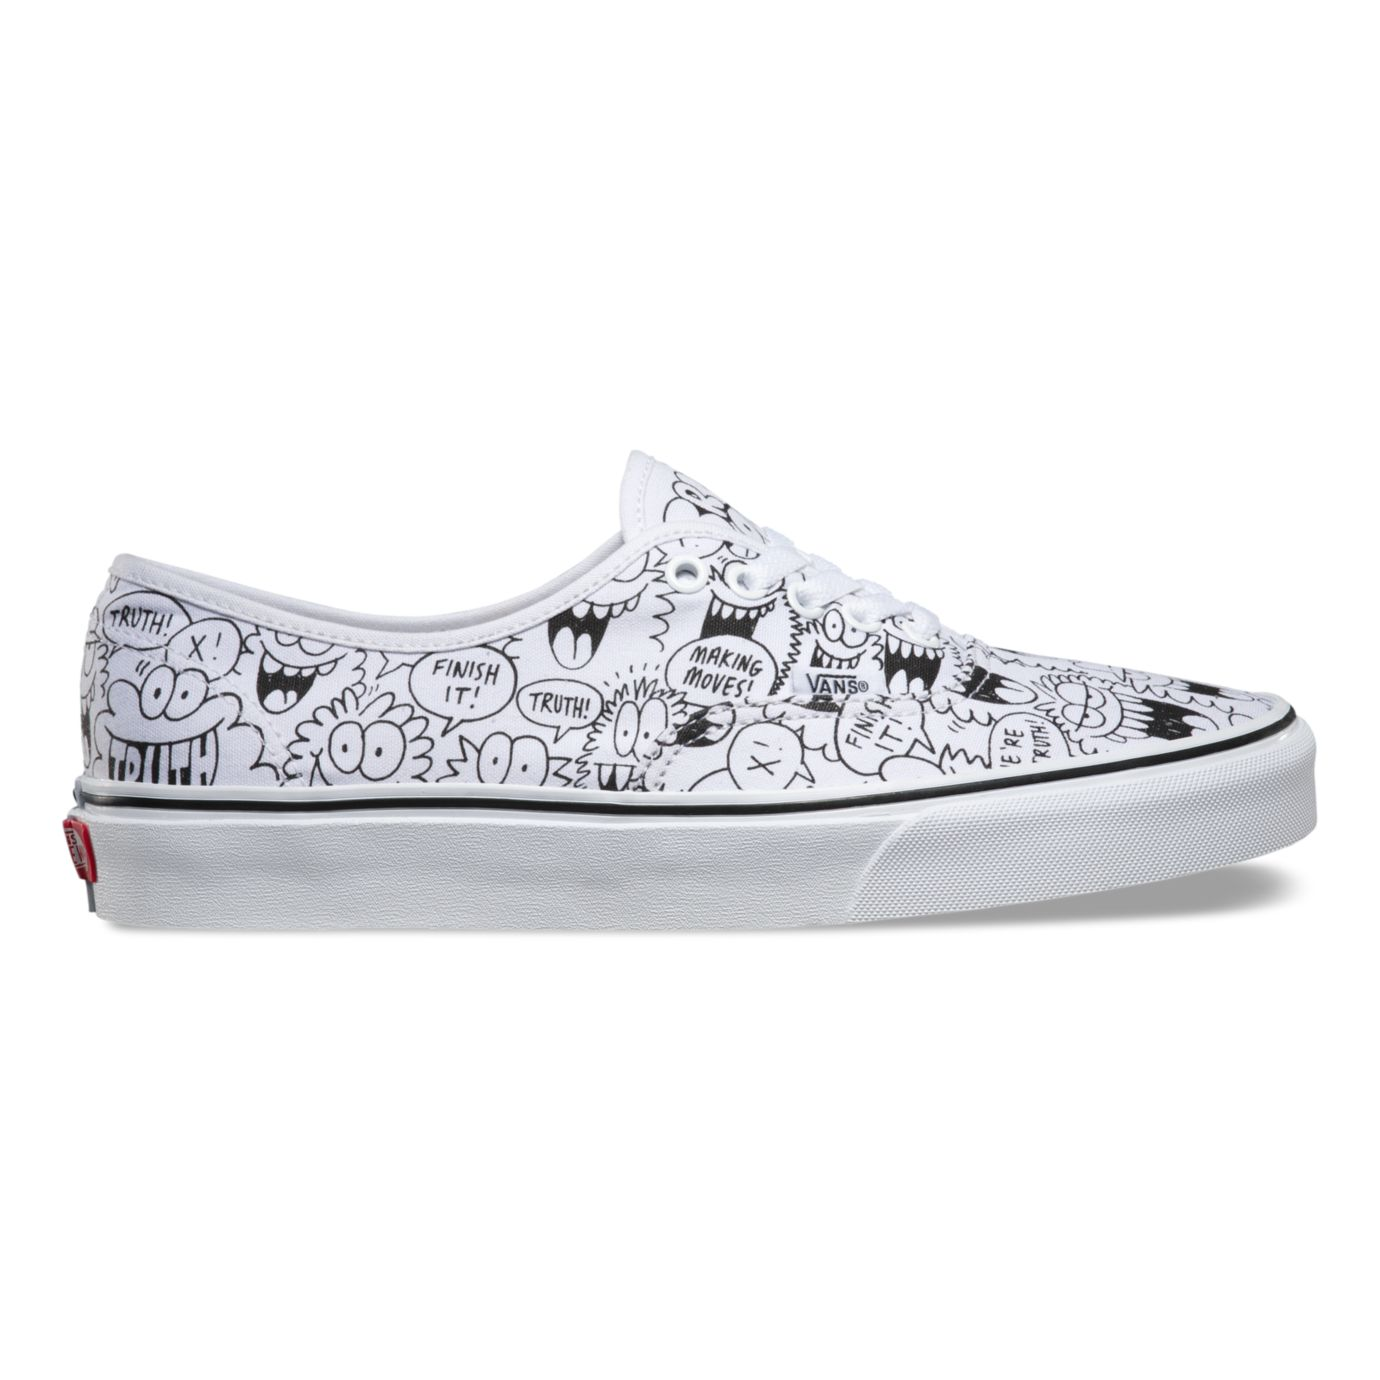 cba6bd6e4c truth and Vans Morph Culture-Changing Art Into Bold Fashion Statement